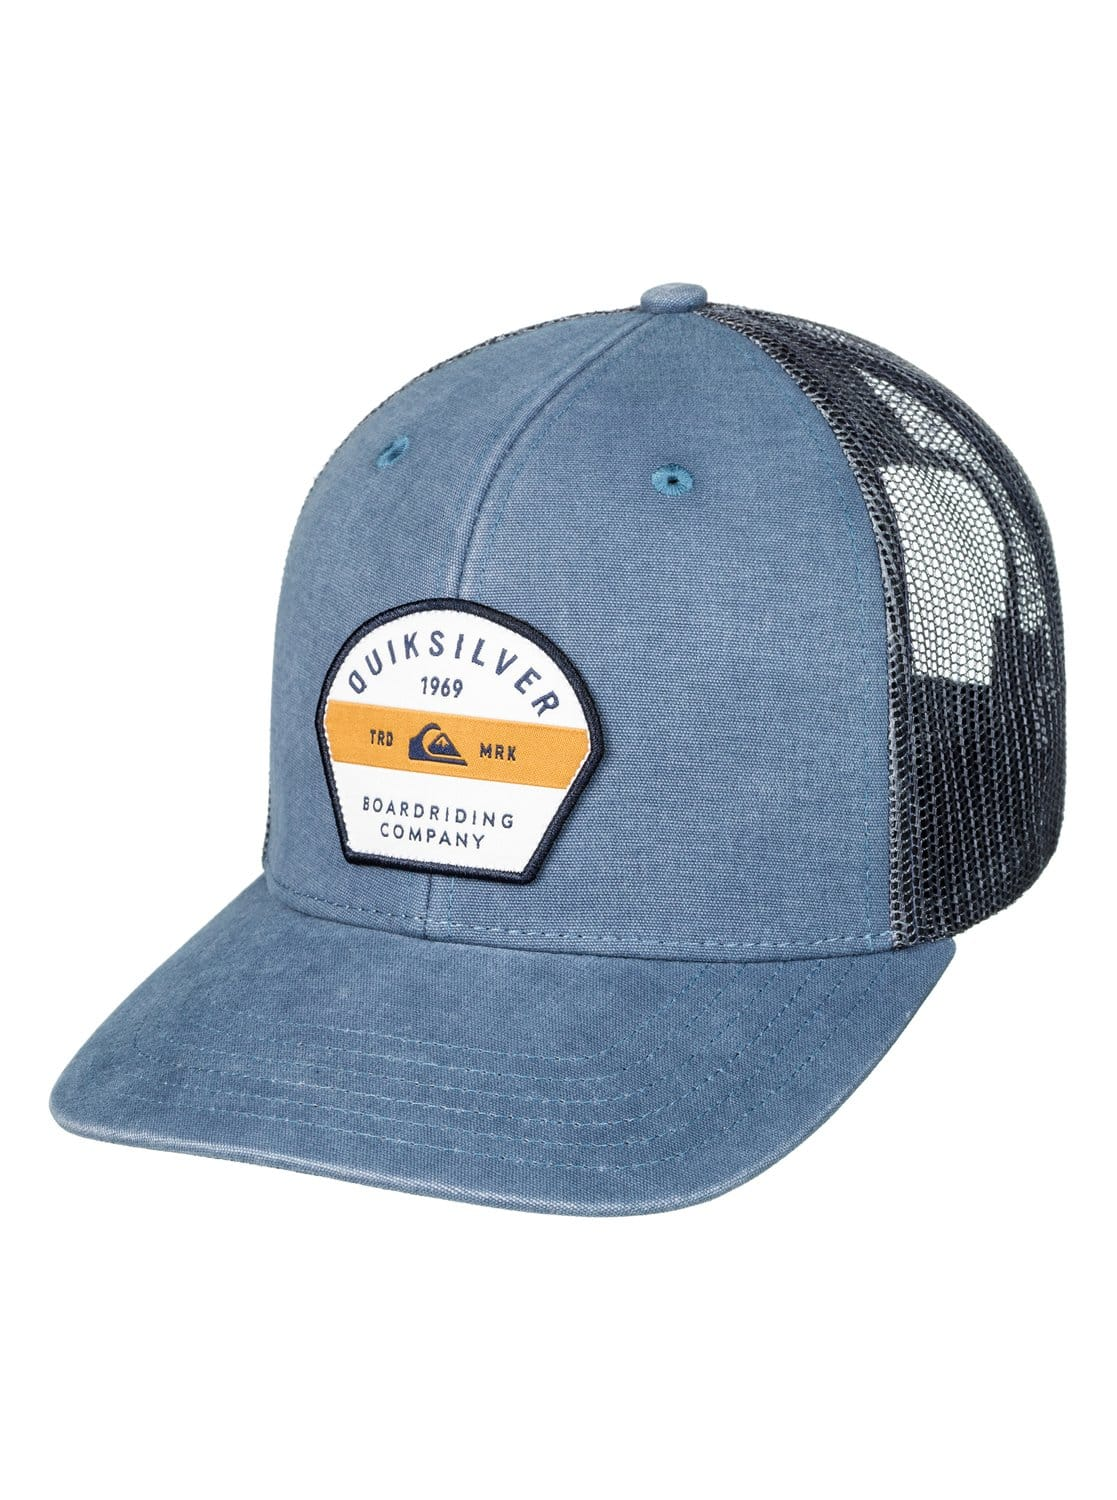 ... best price quiksilver hats from 9.60 with free shipping ee87e b4695  free shipping quiksilver black turnstyles trucker ... 4d2c7b049244